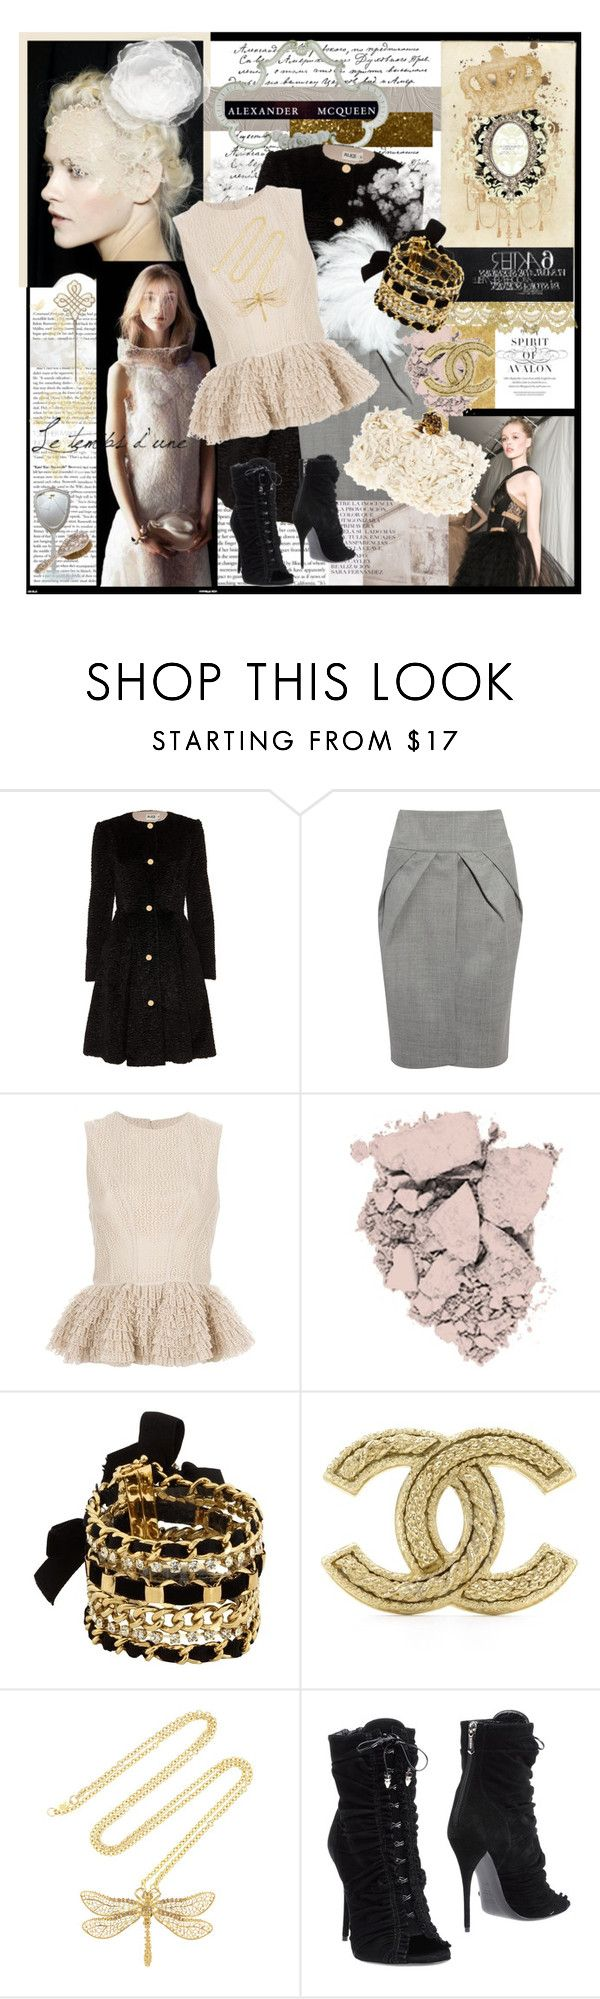 """""""the metamorphosis of : white swan"""" by tartlet ❤ liked on Polyvore featuring Alexander McQueen, Alice by Temperley, Giambattista Valli, GINTA, Revlon, Juicy Couture, FRIDA, Chanel, Balmain and AlexanderMcQueen"""